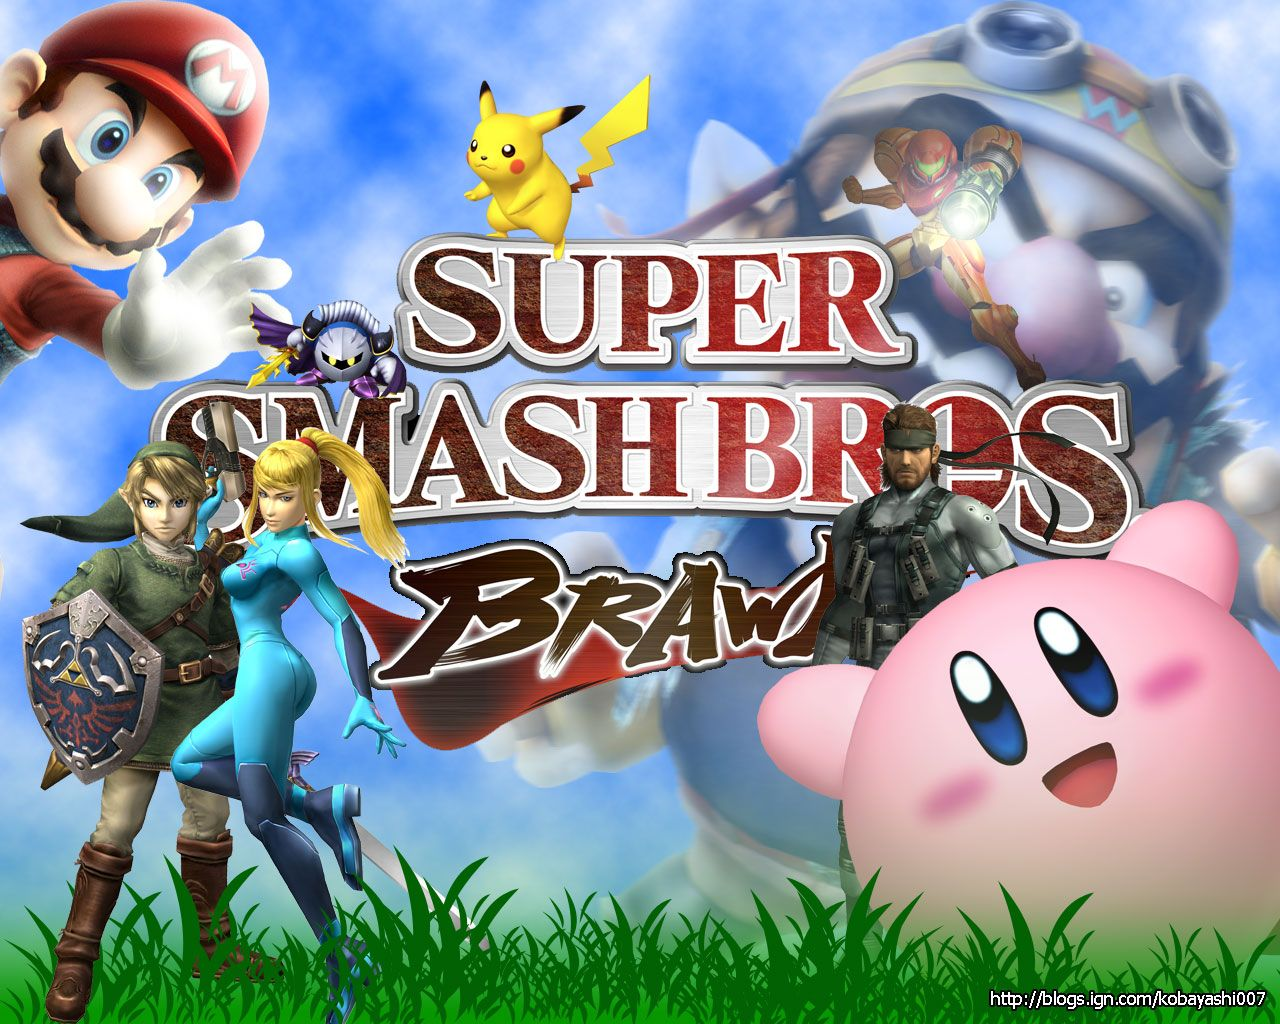 Mario smash bros online flash game